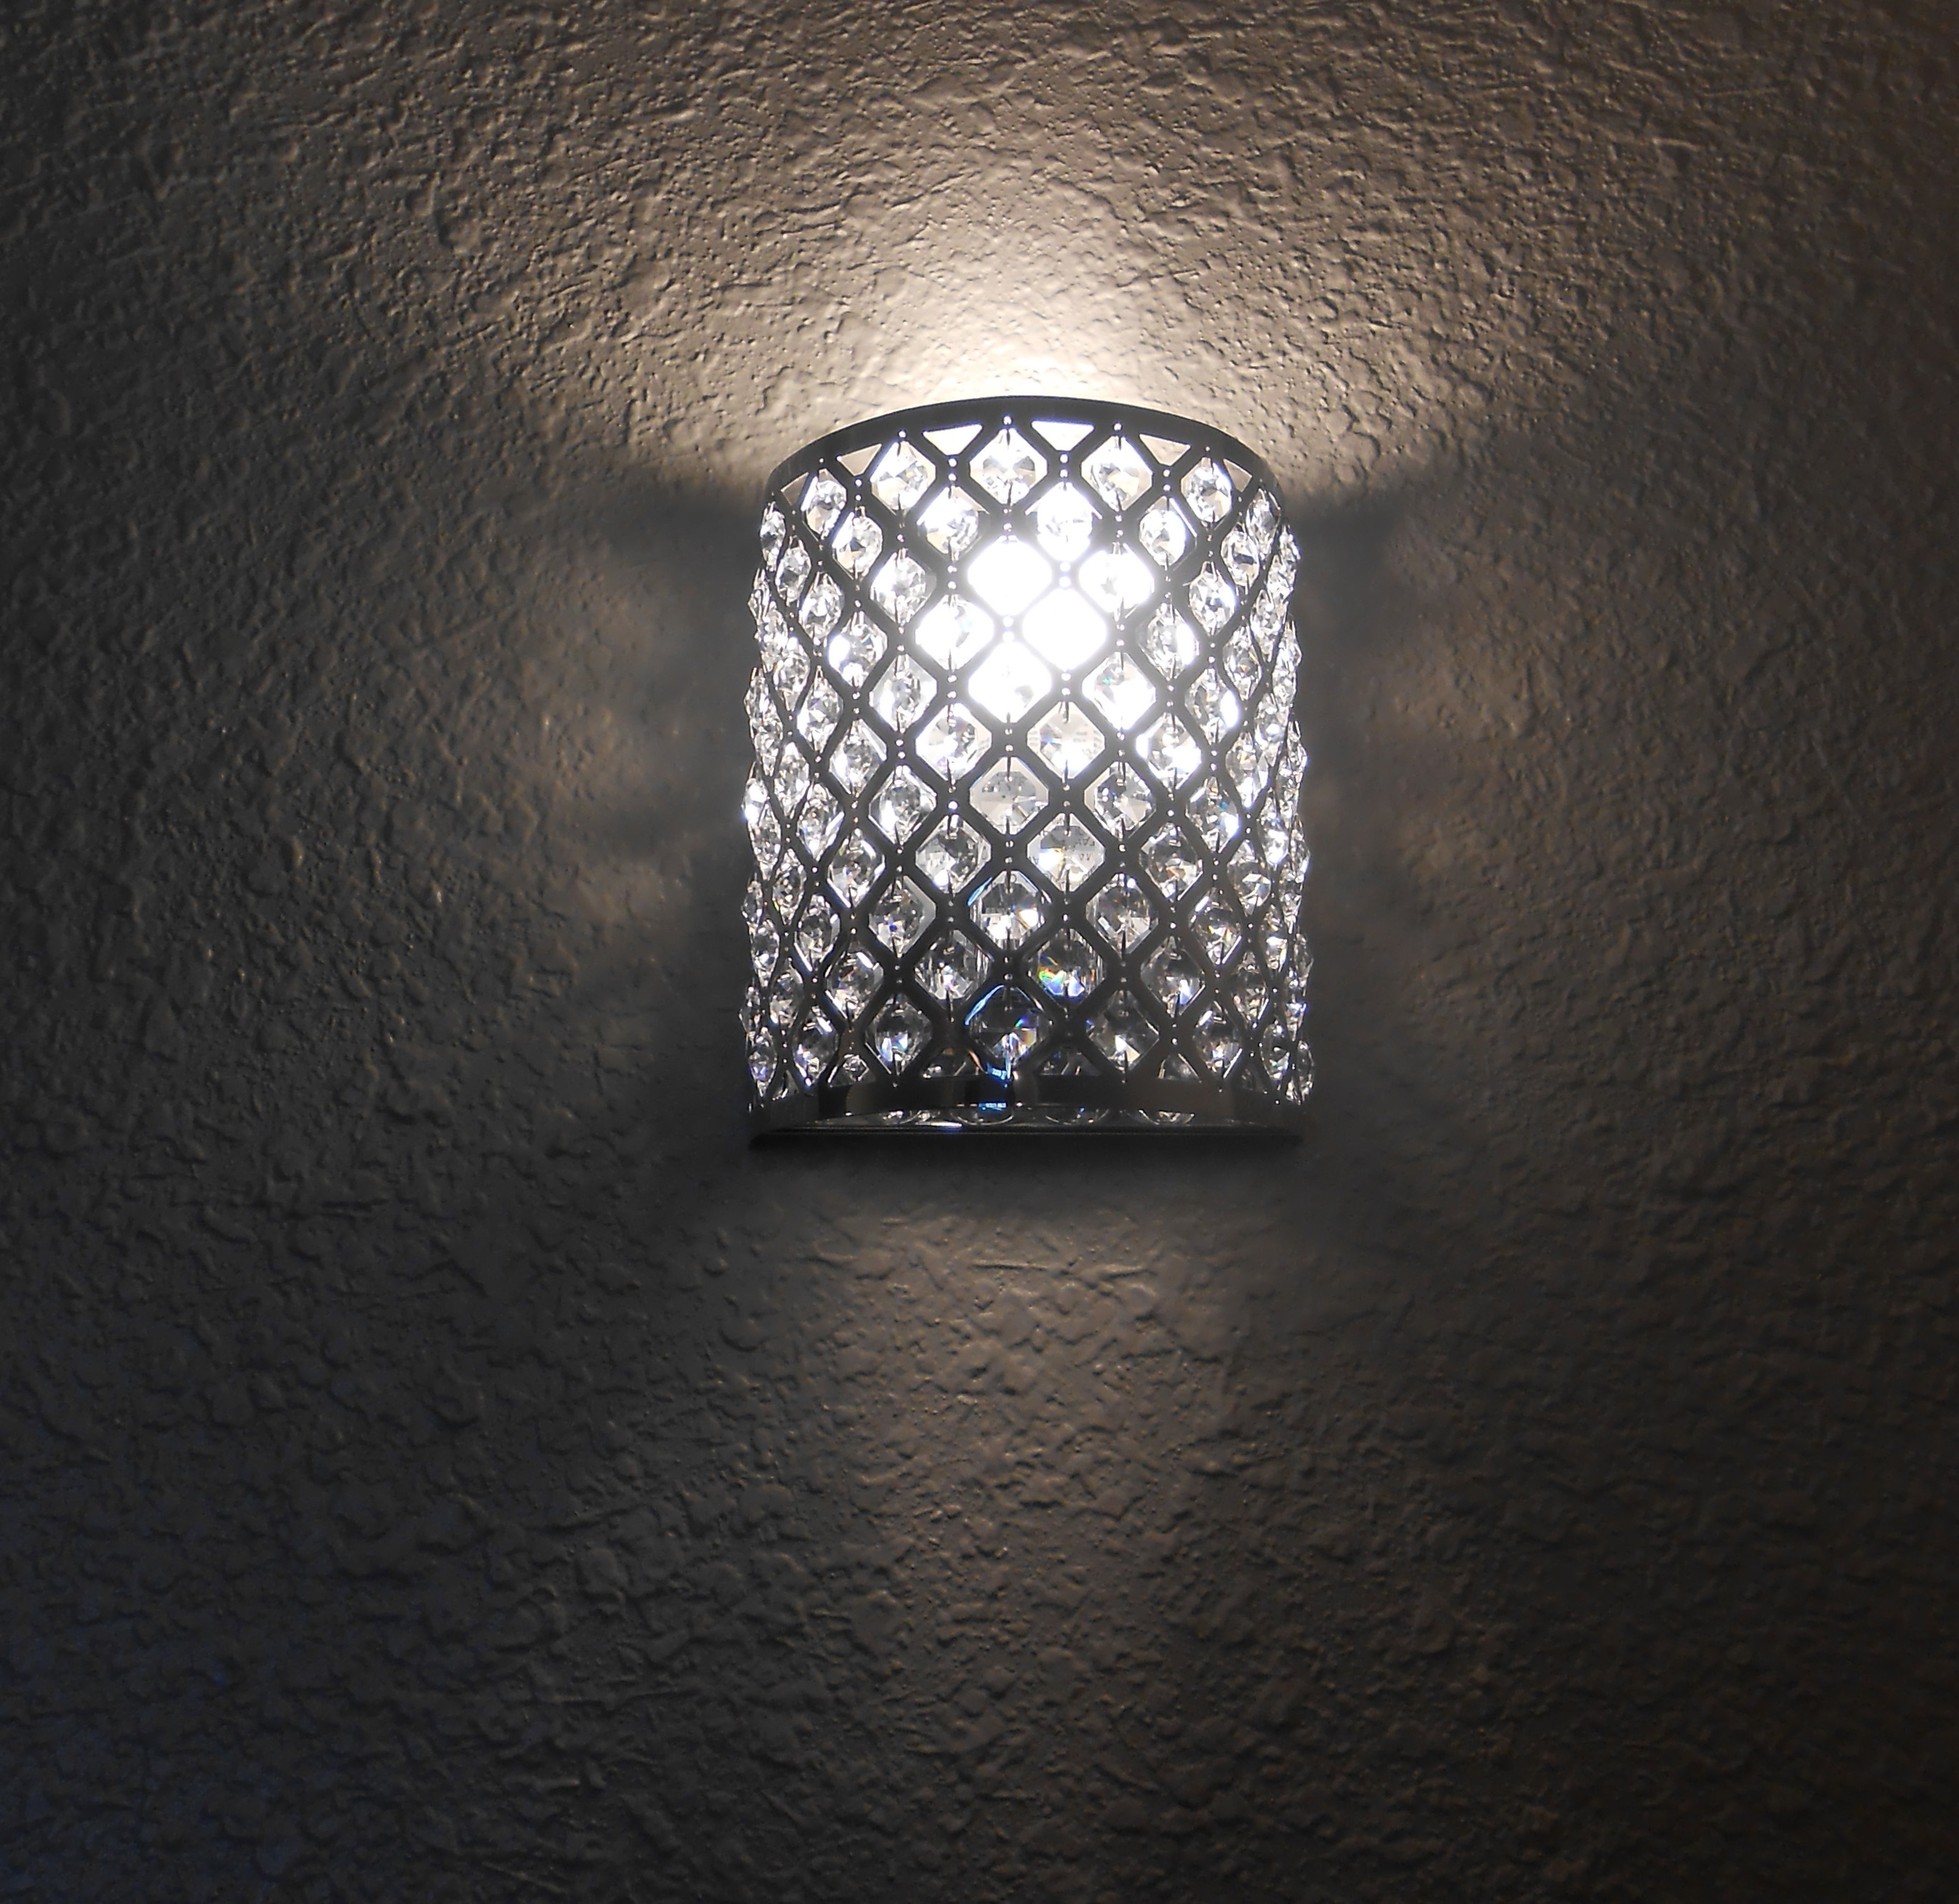 Battery Powered Outdoor Wall Lights • Outdoor Lighting In Well Known Battery Operated Outdoor Wall Lights (View 8 of 20)